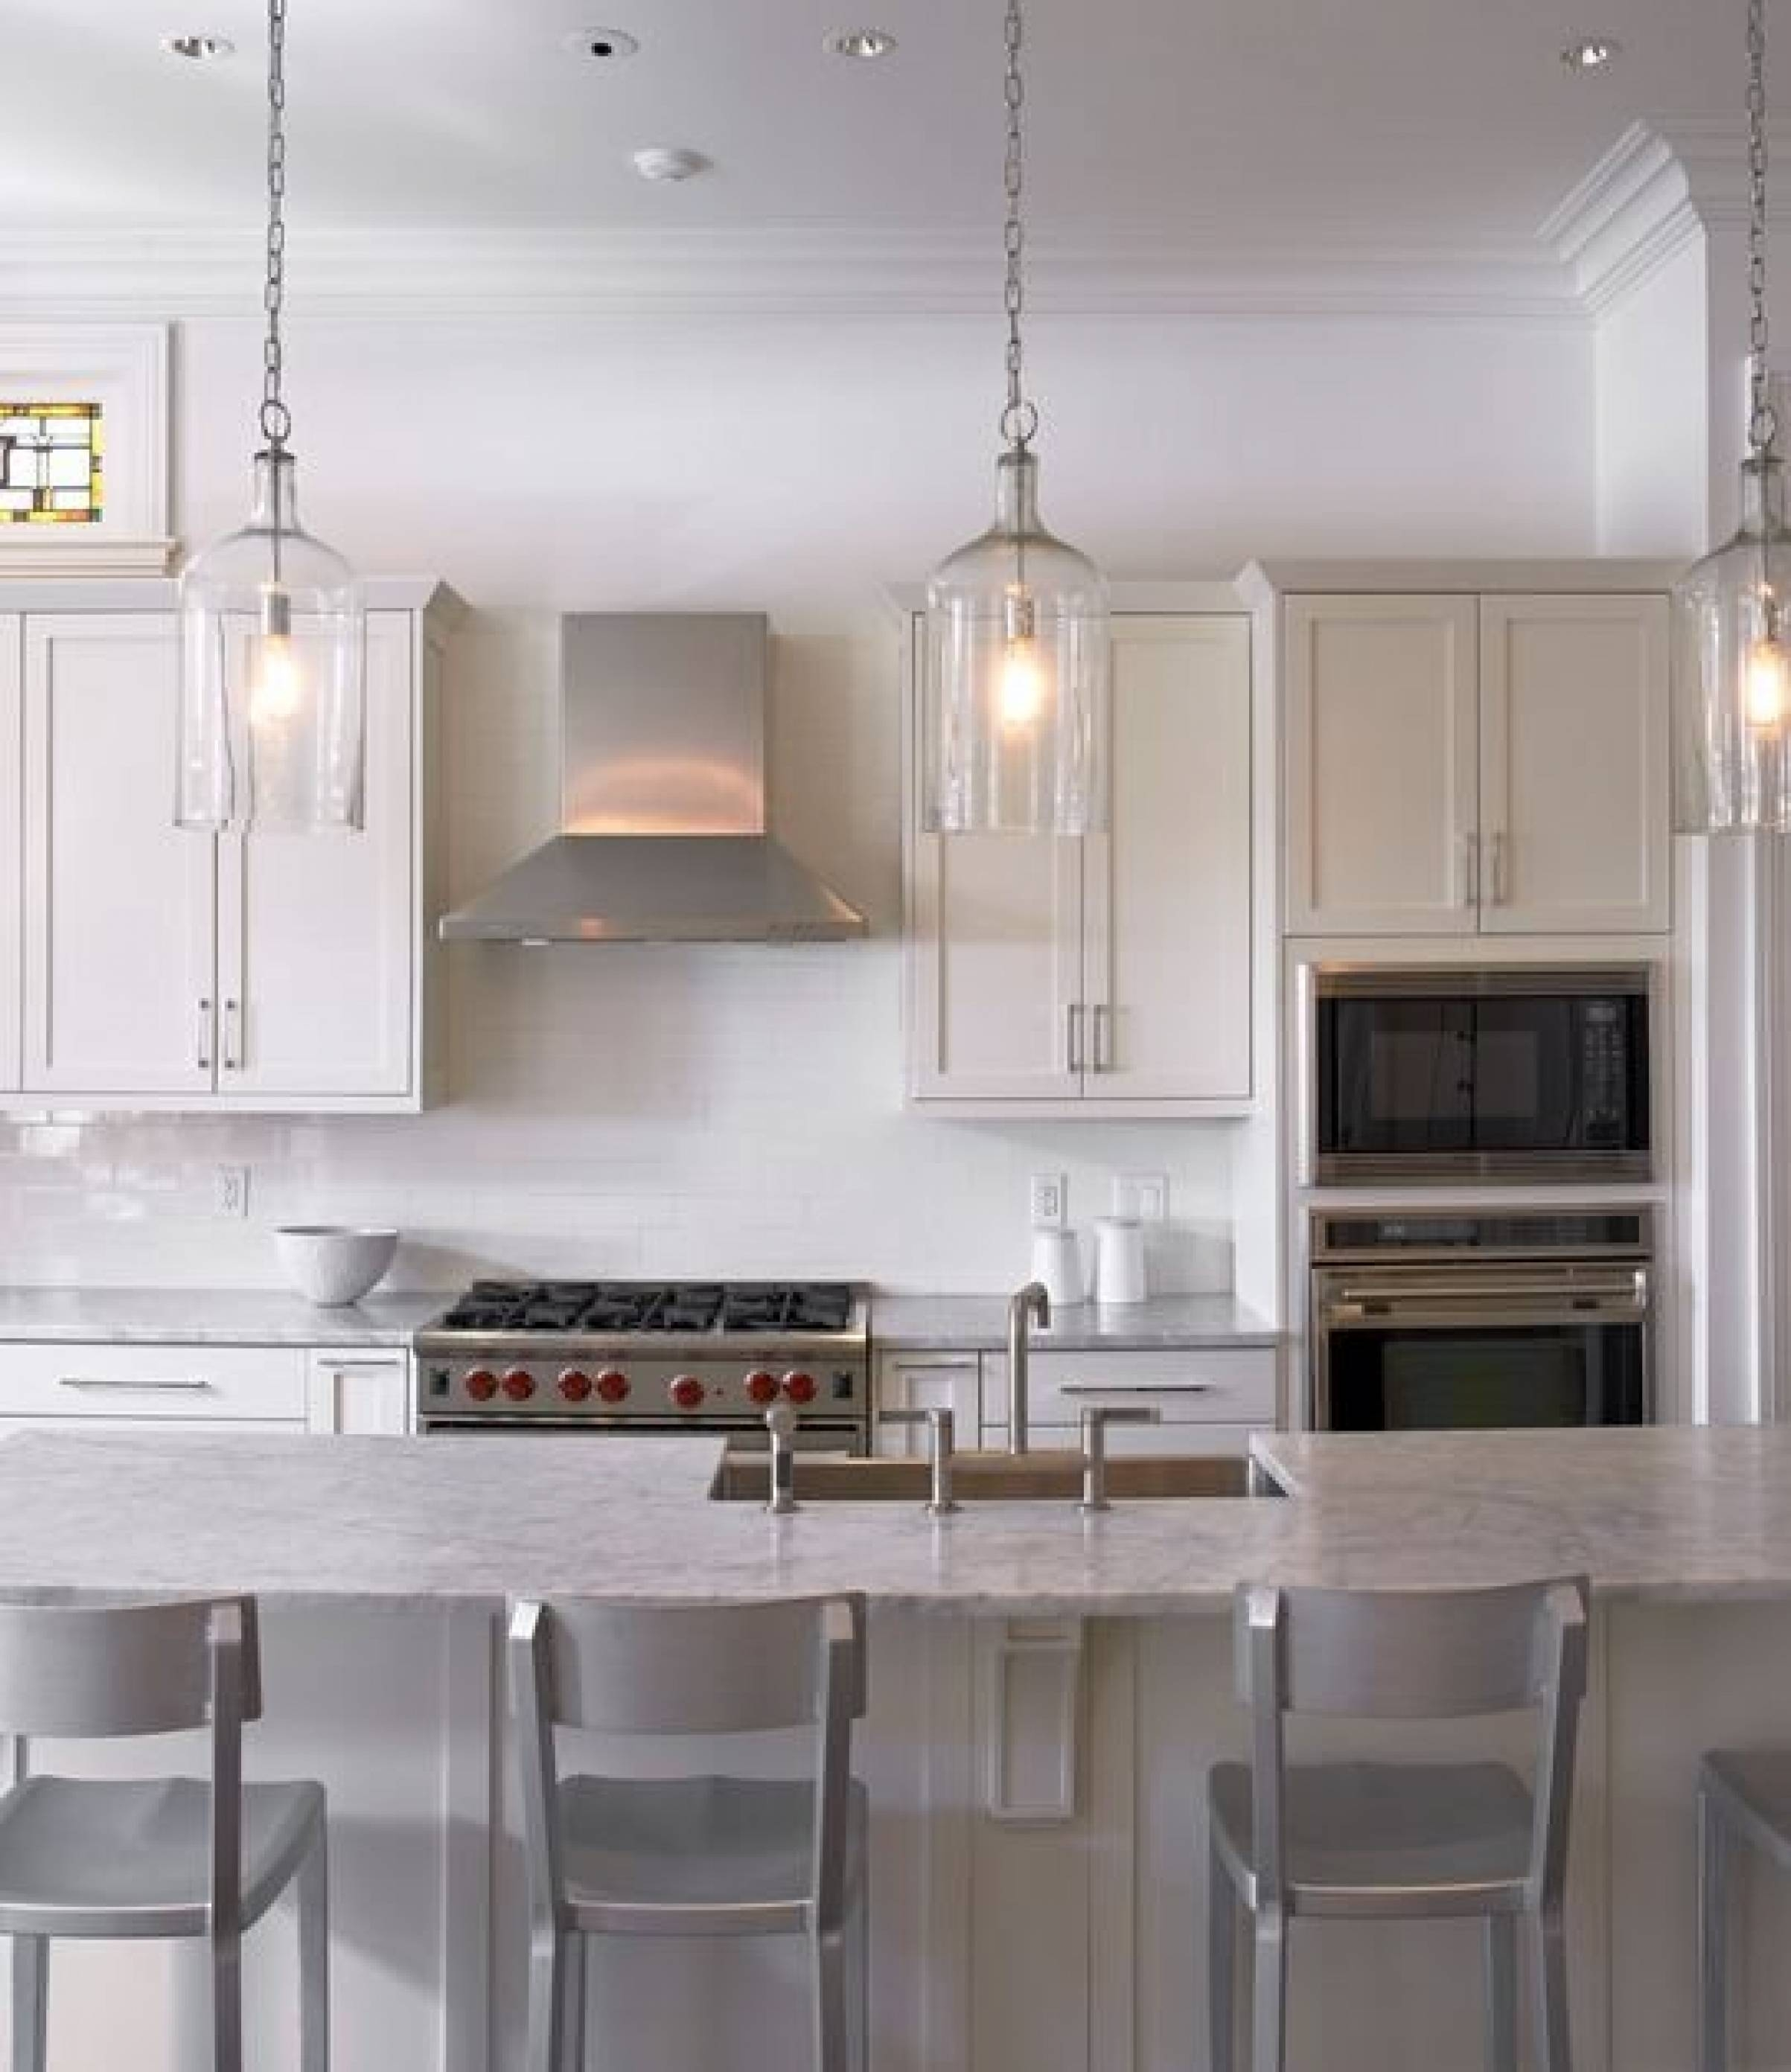 Perfect Clear Glass Pendant Lights For Kitchen Island 50 In Multi In Lighting Pendants For Kitchen Islands (View 10 of 15)